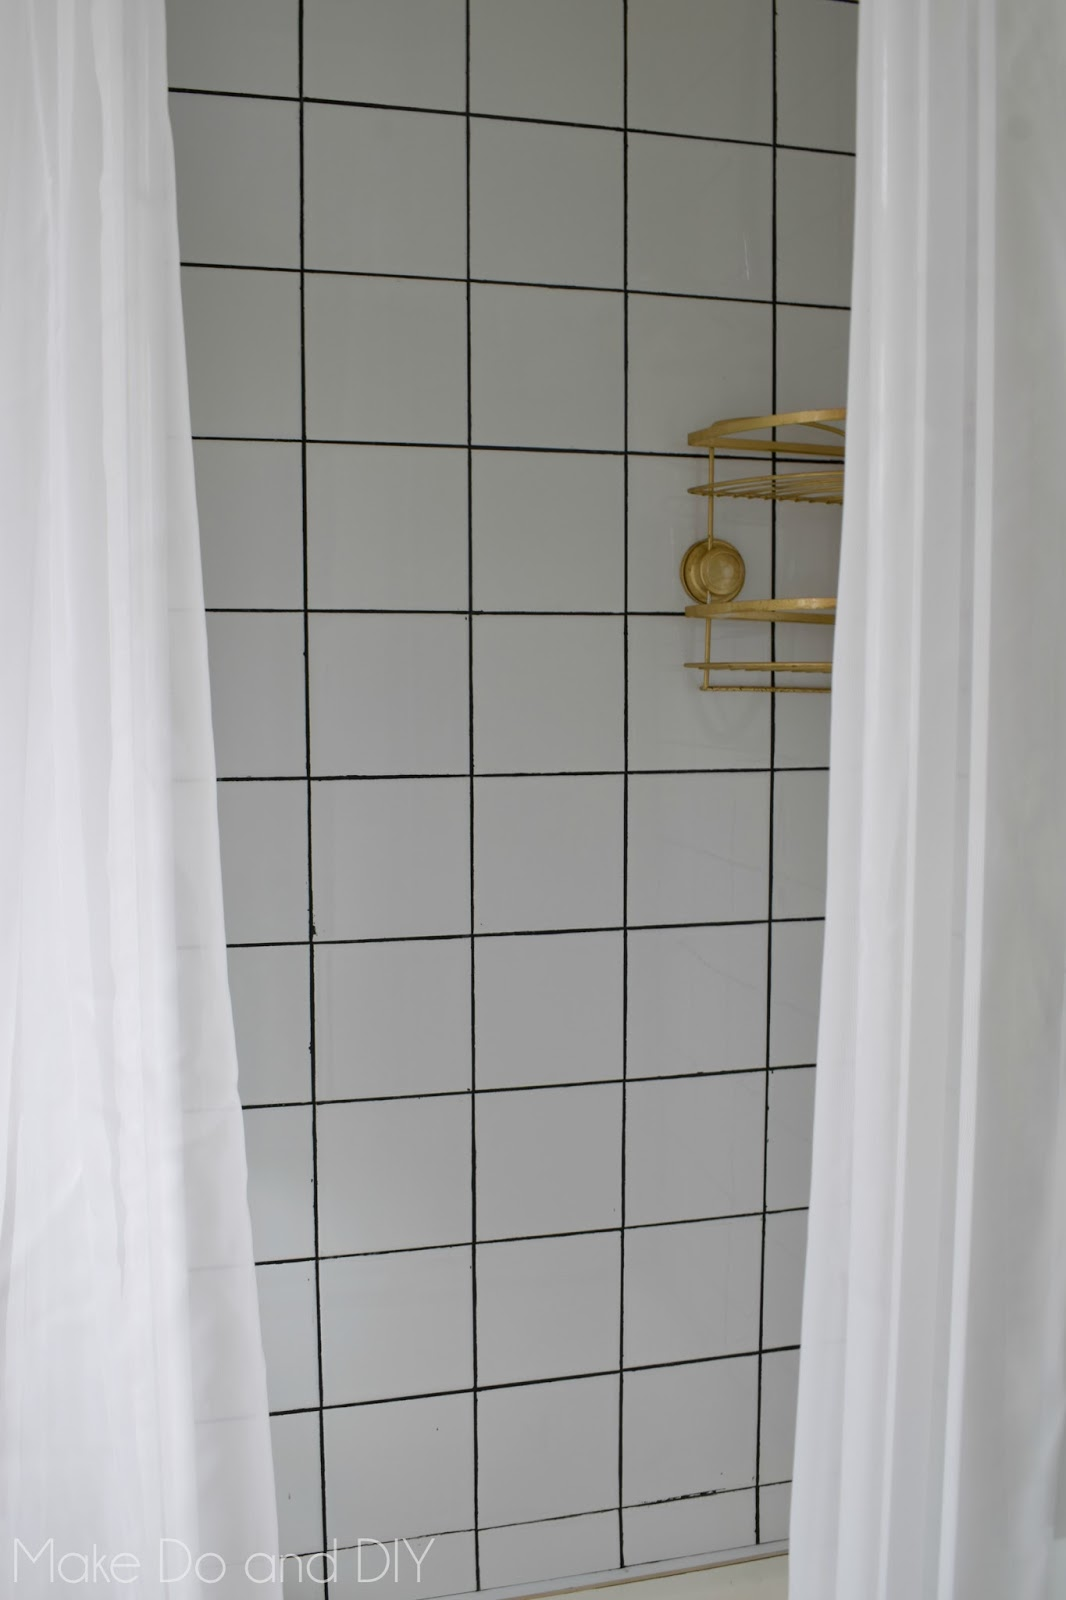 painted the shower make do and diy